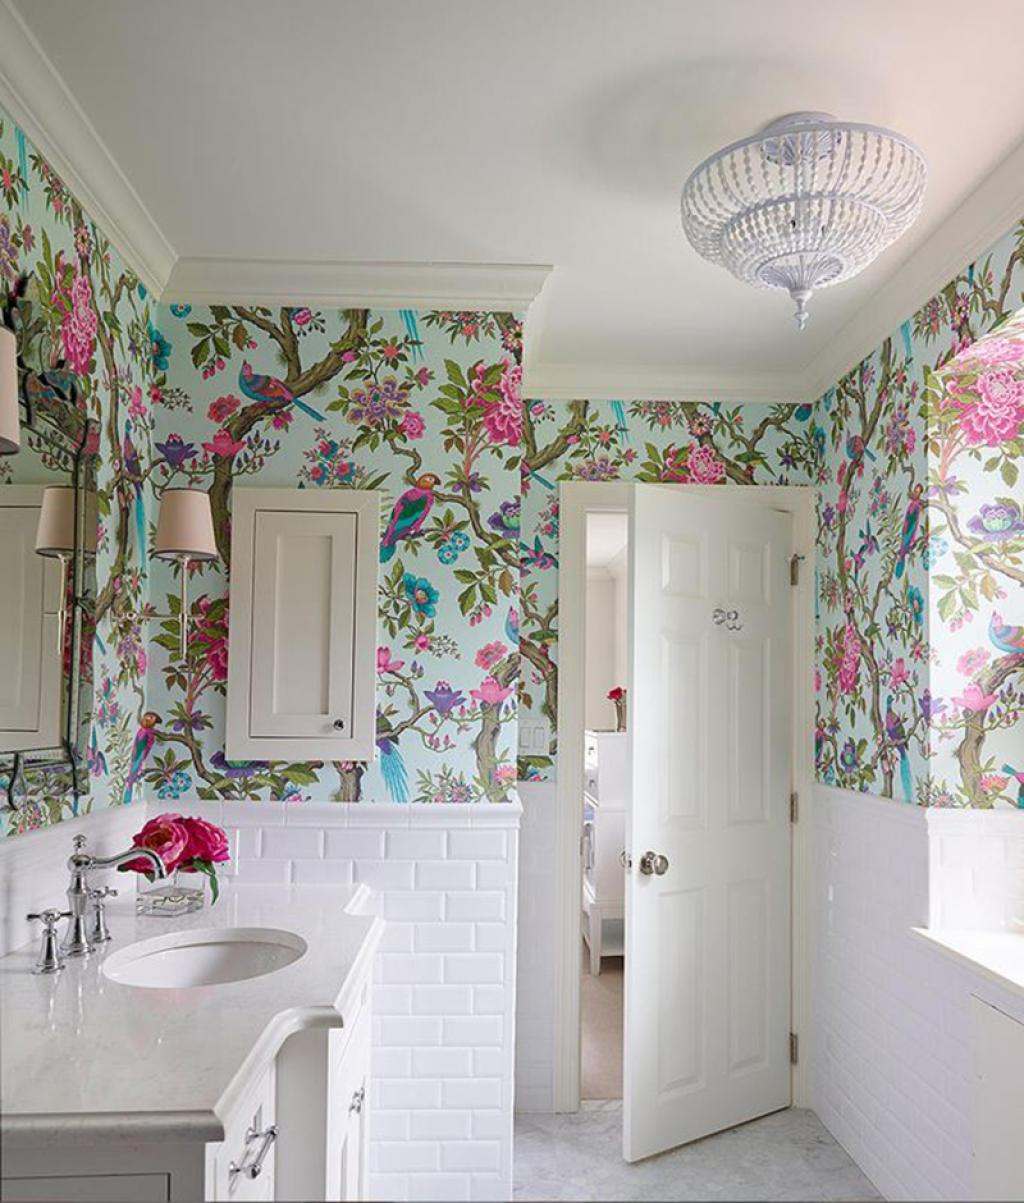 Baños Print Floral Royal Bathroom Wallpaper Ideas On Small White